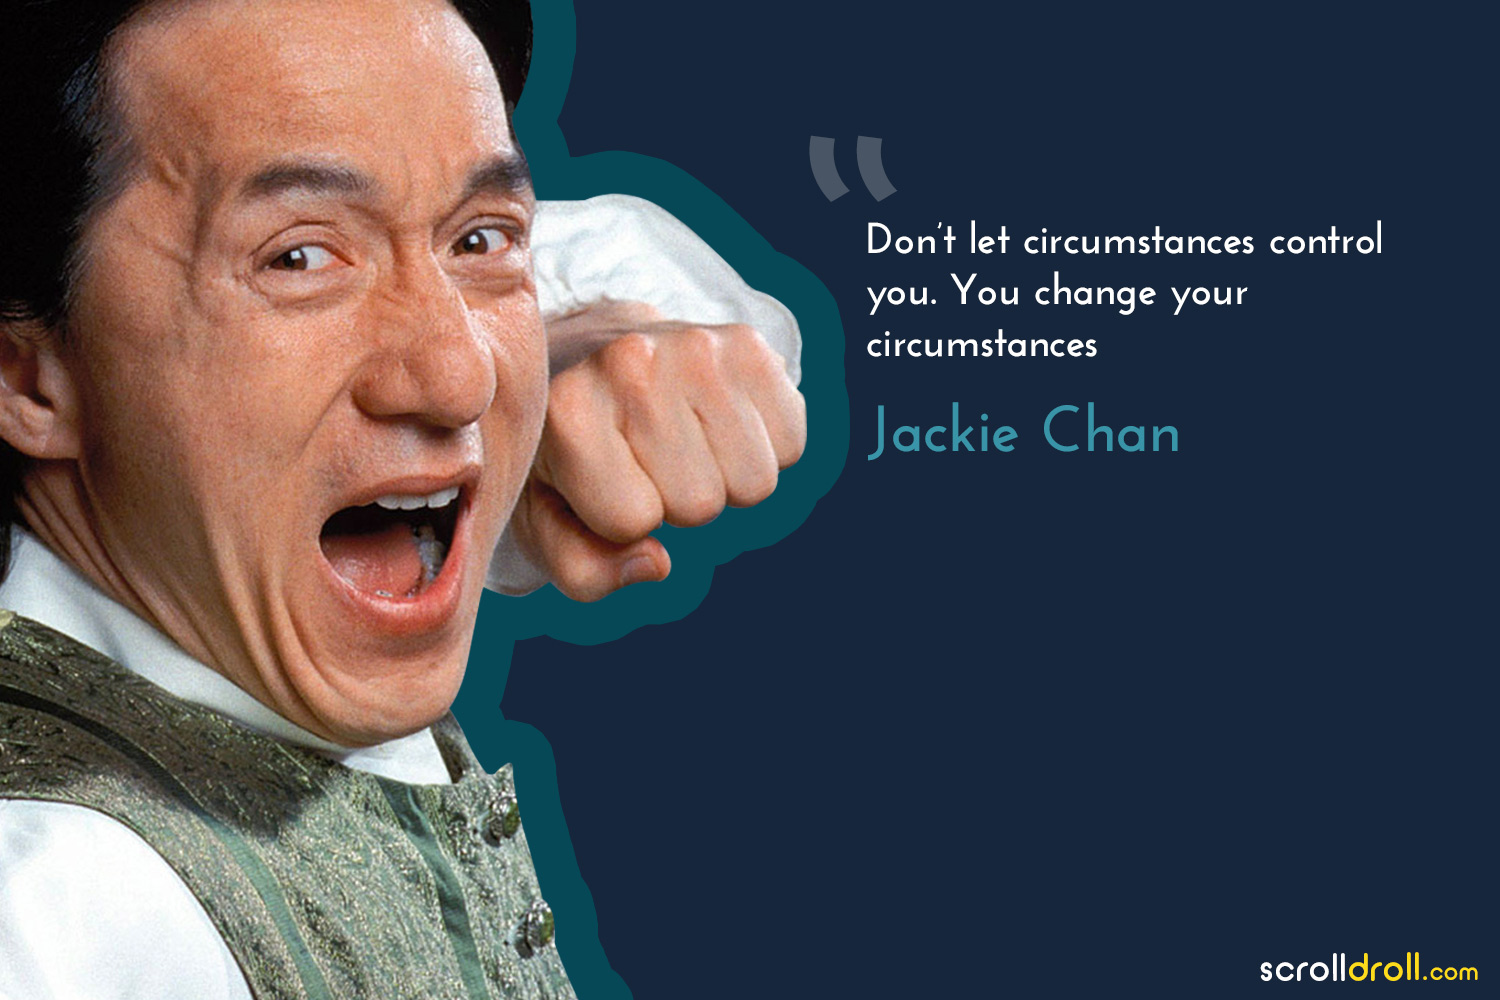 Powerful Quotes By Successful People-quote by jackie chan